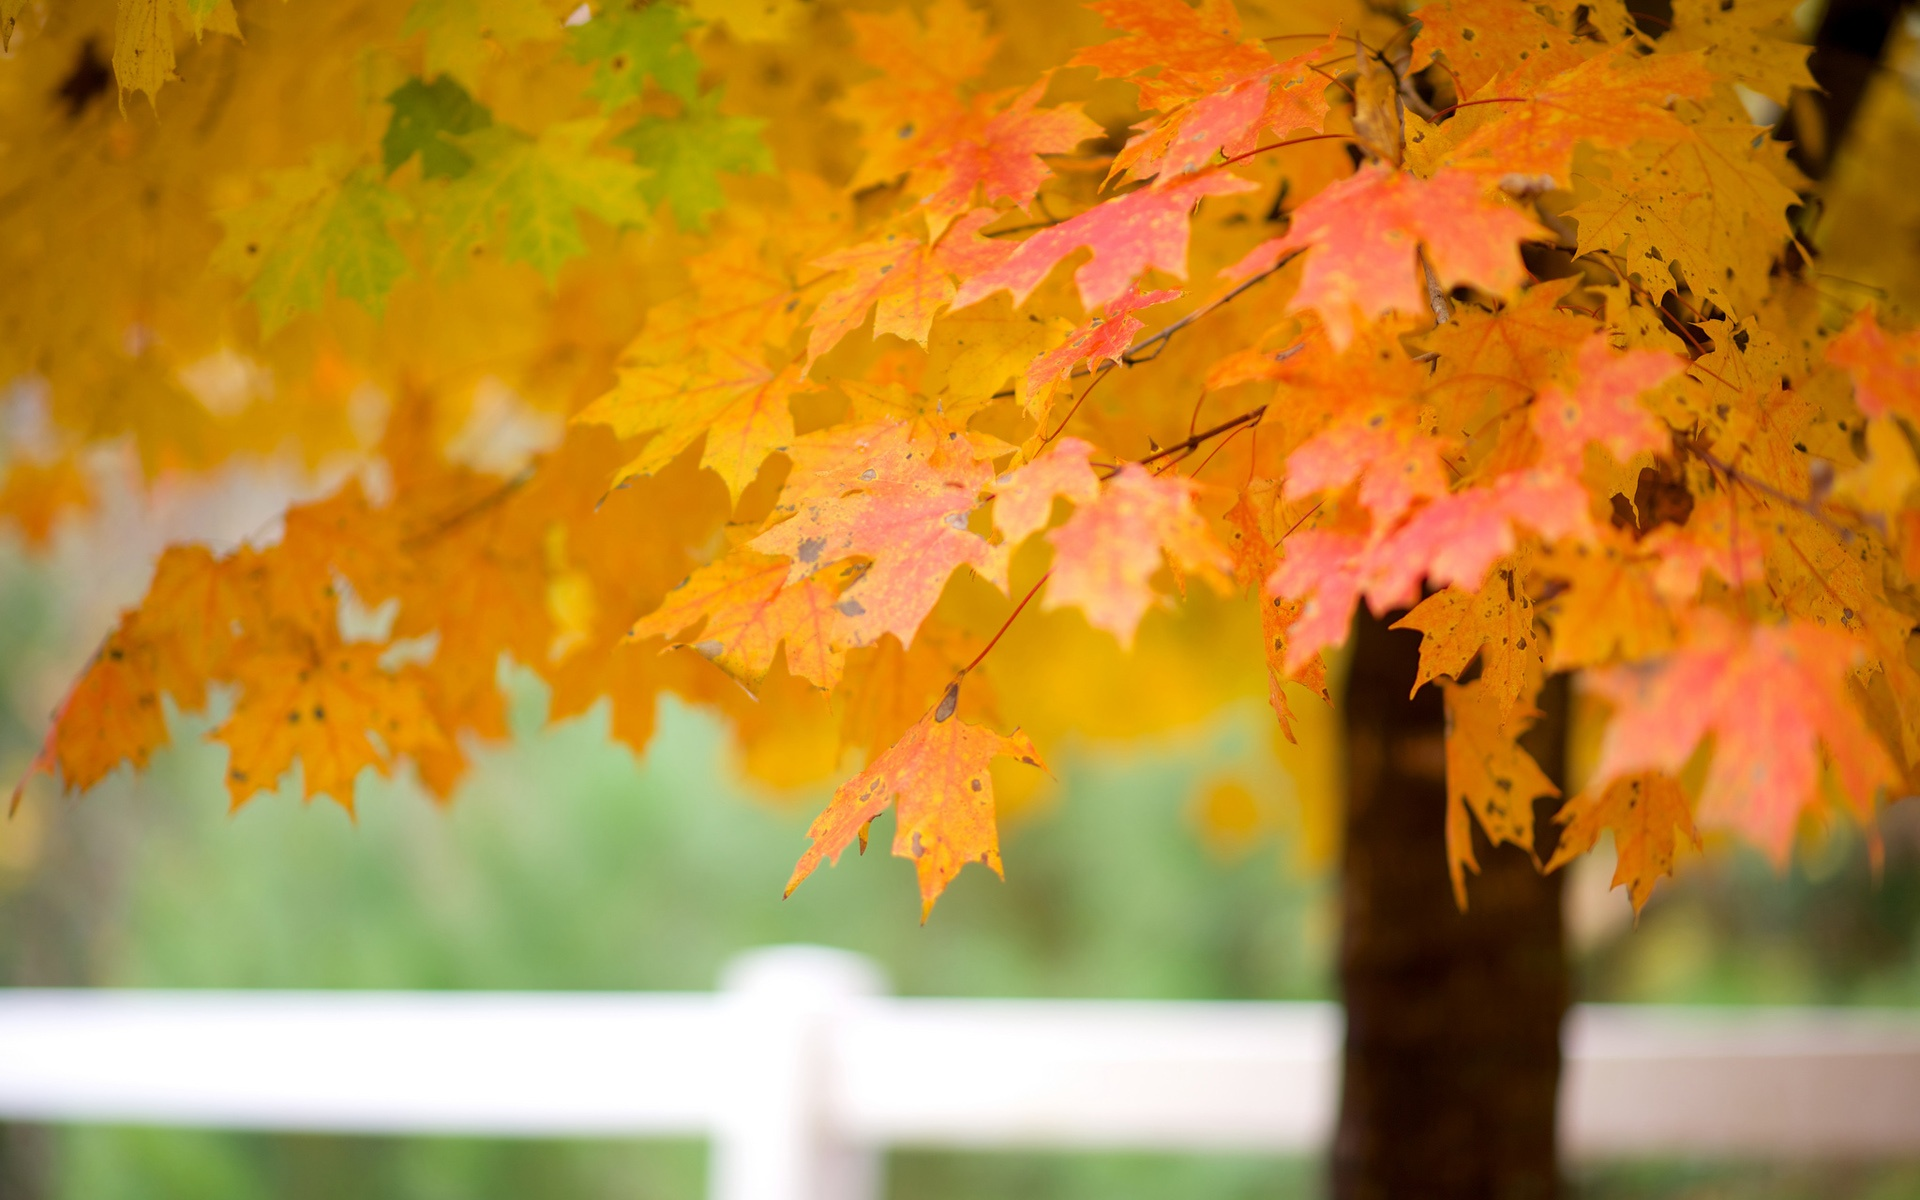 Wallpaper Maple Tree Leaves Autumn 1920x1200 Hd Picture Image